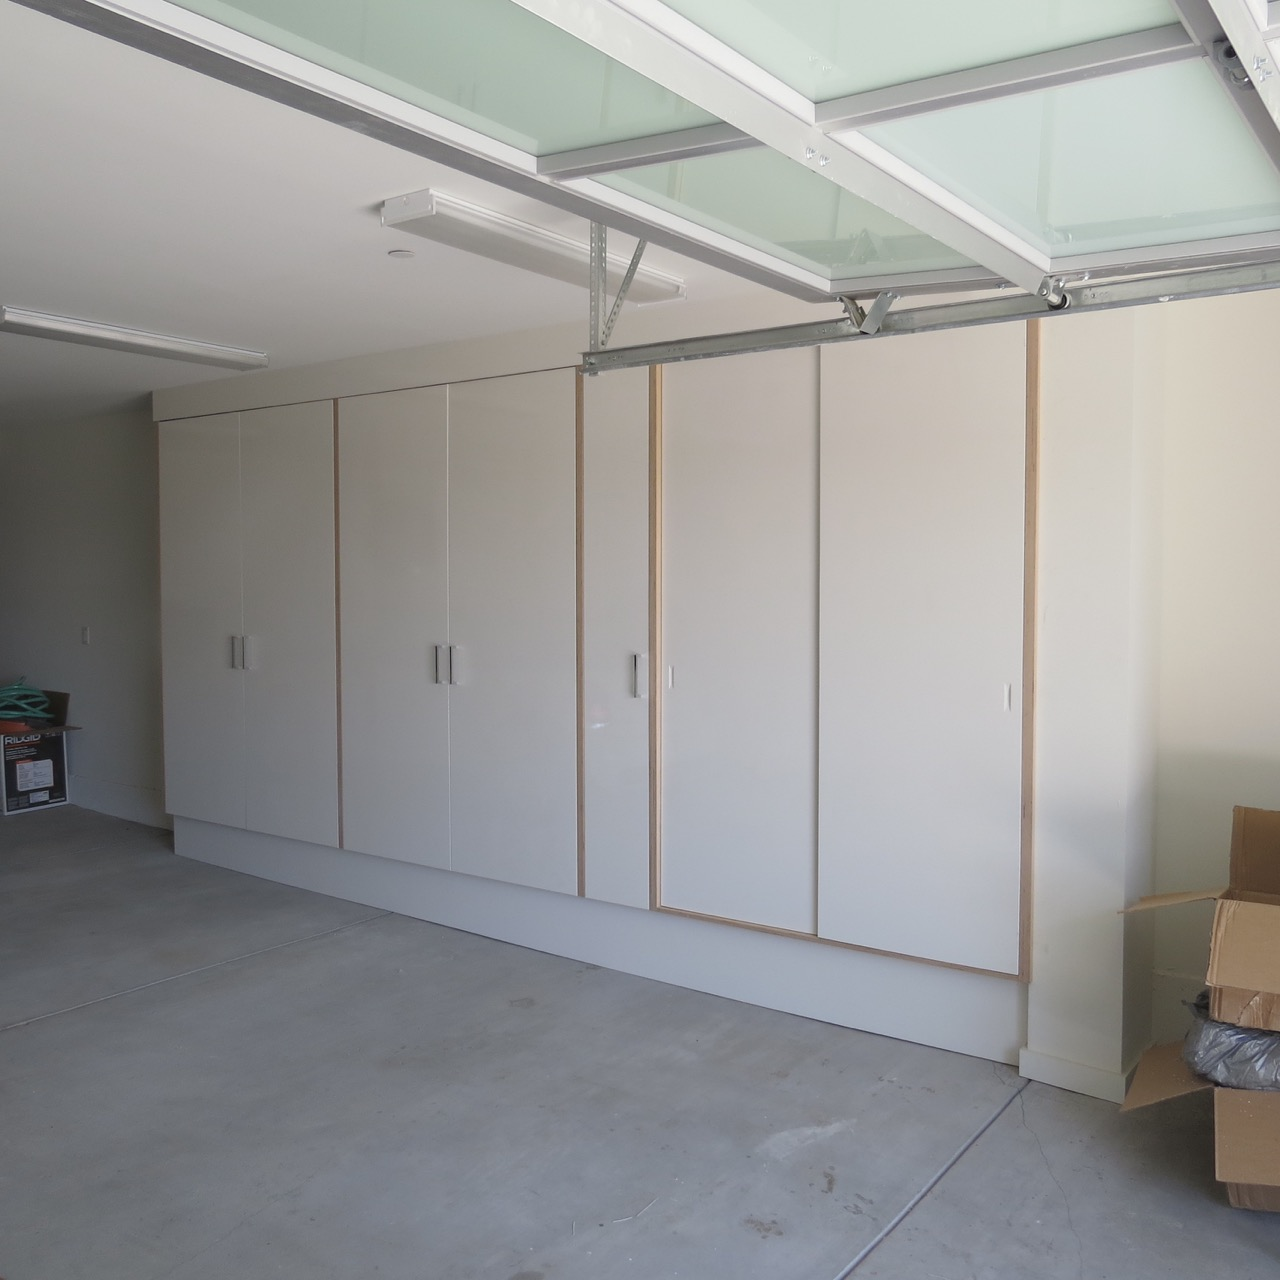 Completed garage unit with leaf and sliding doors.